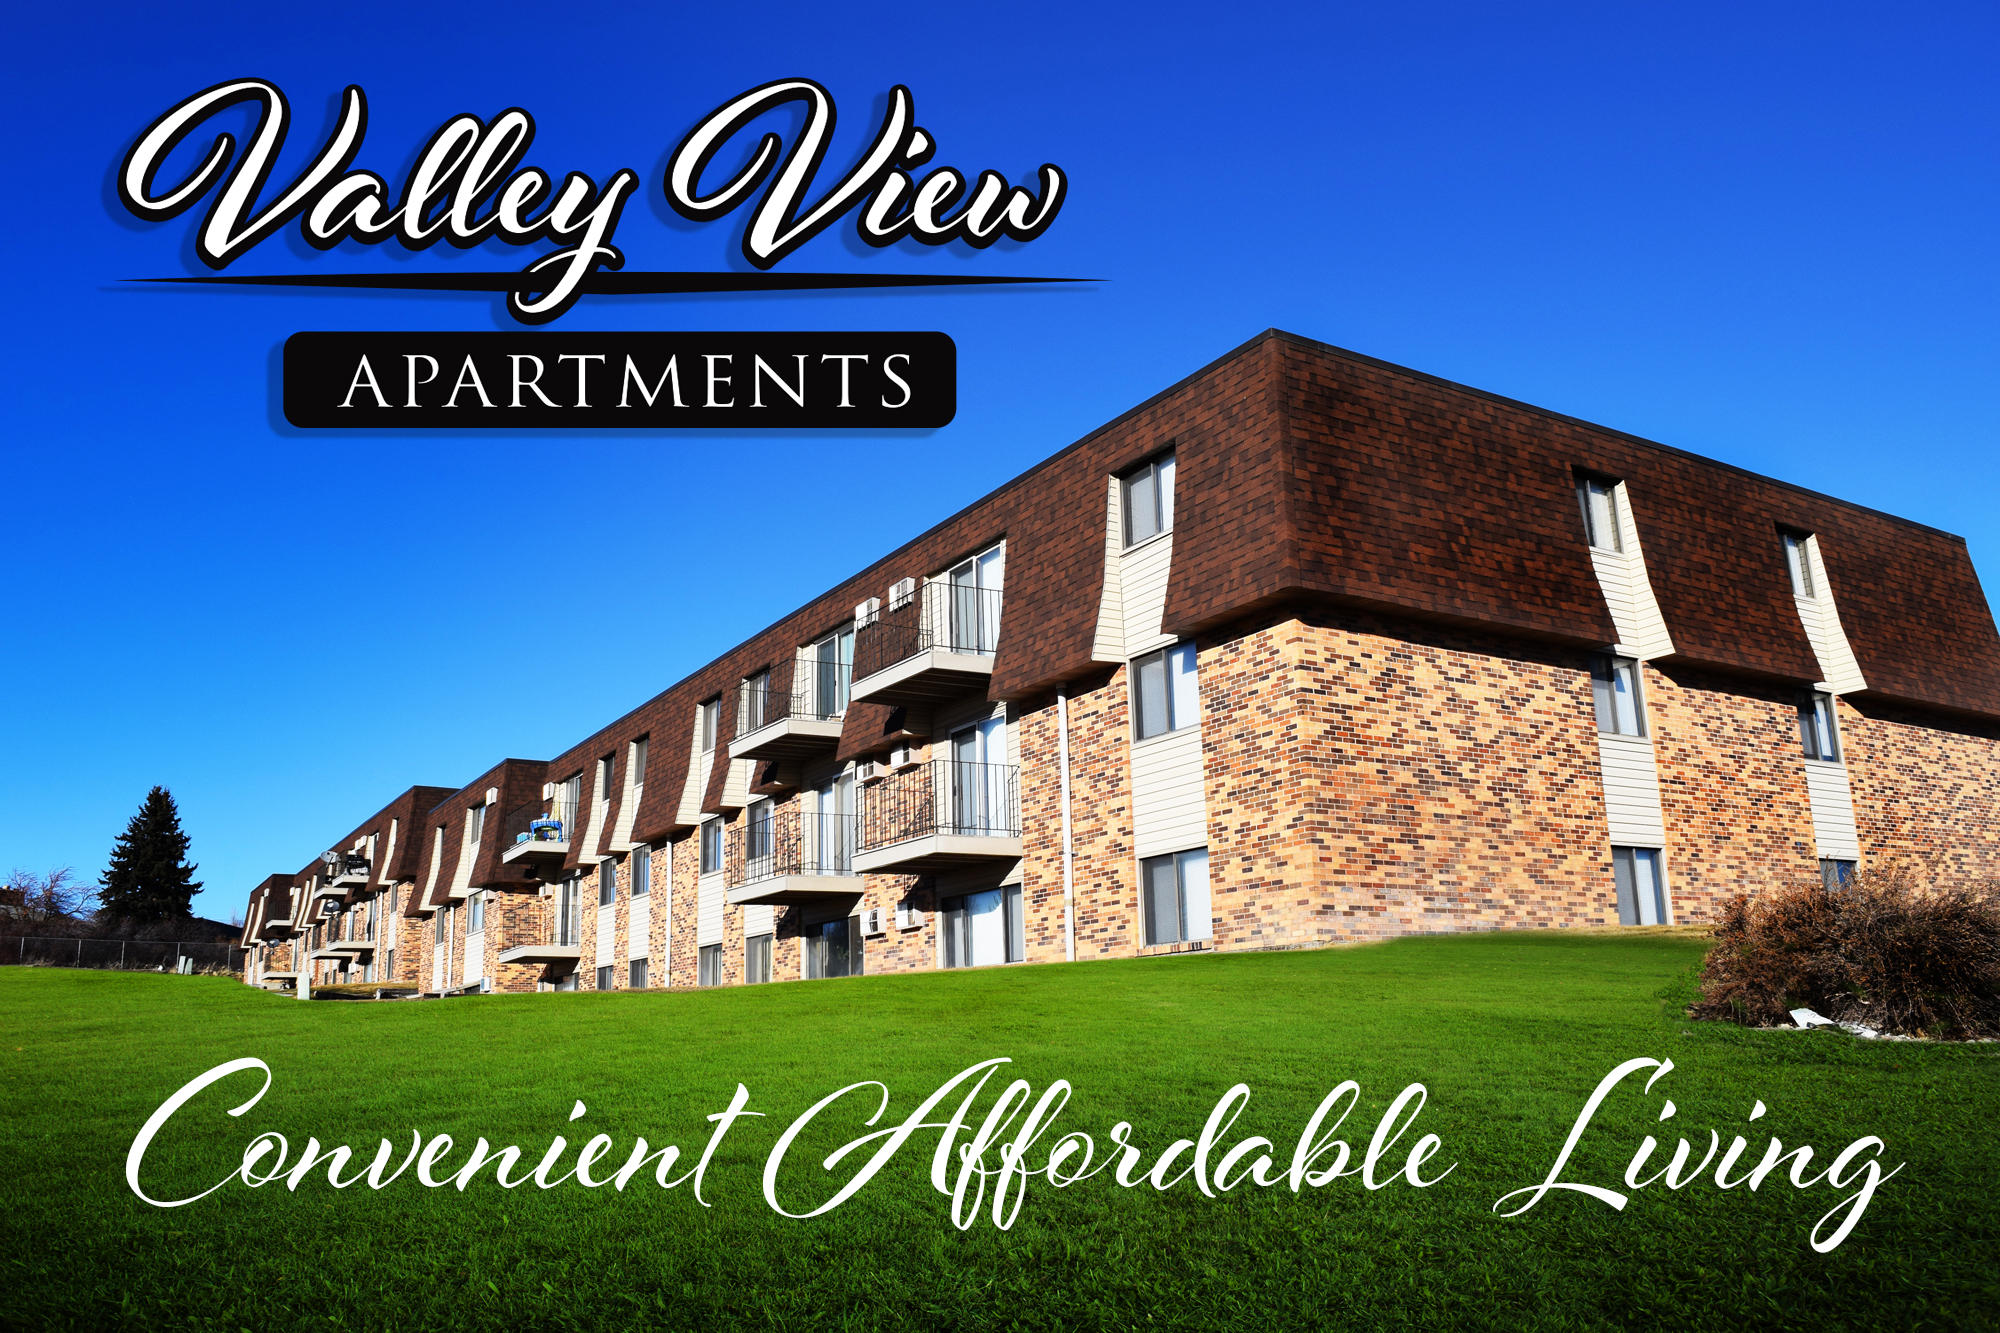 Valley View Apartments image 0